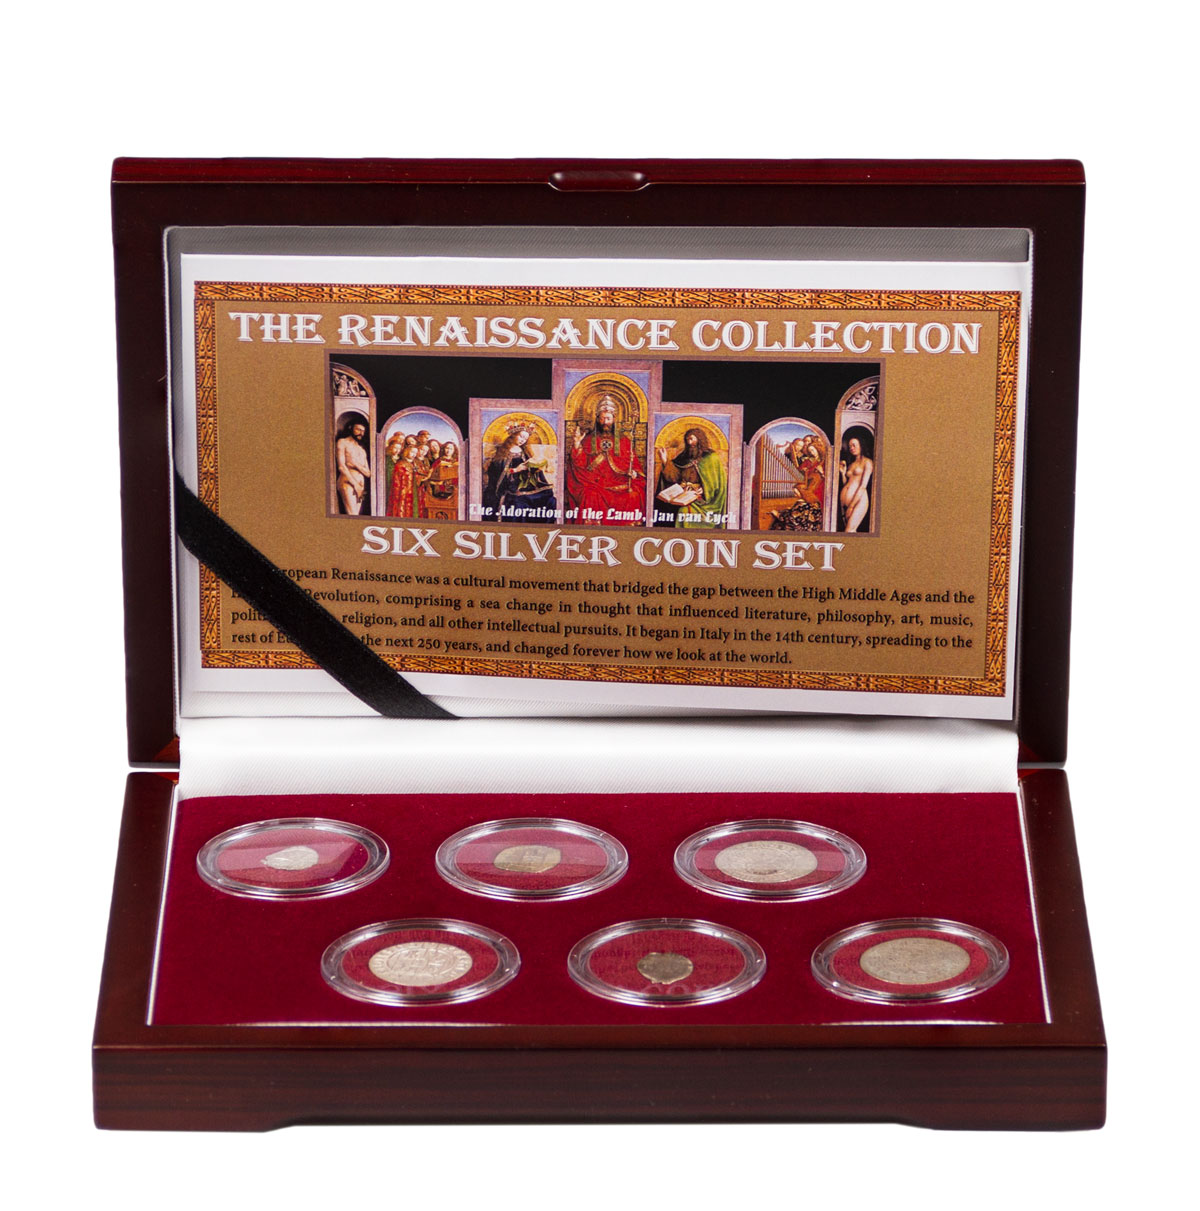 The Renaissance: 6 Silver Coin Collection